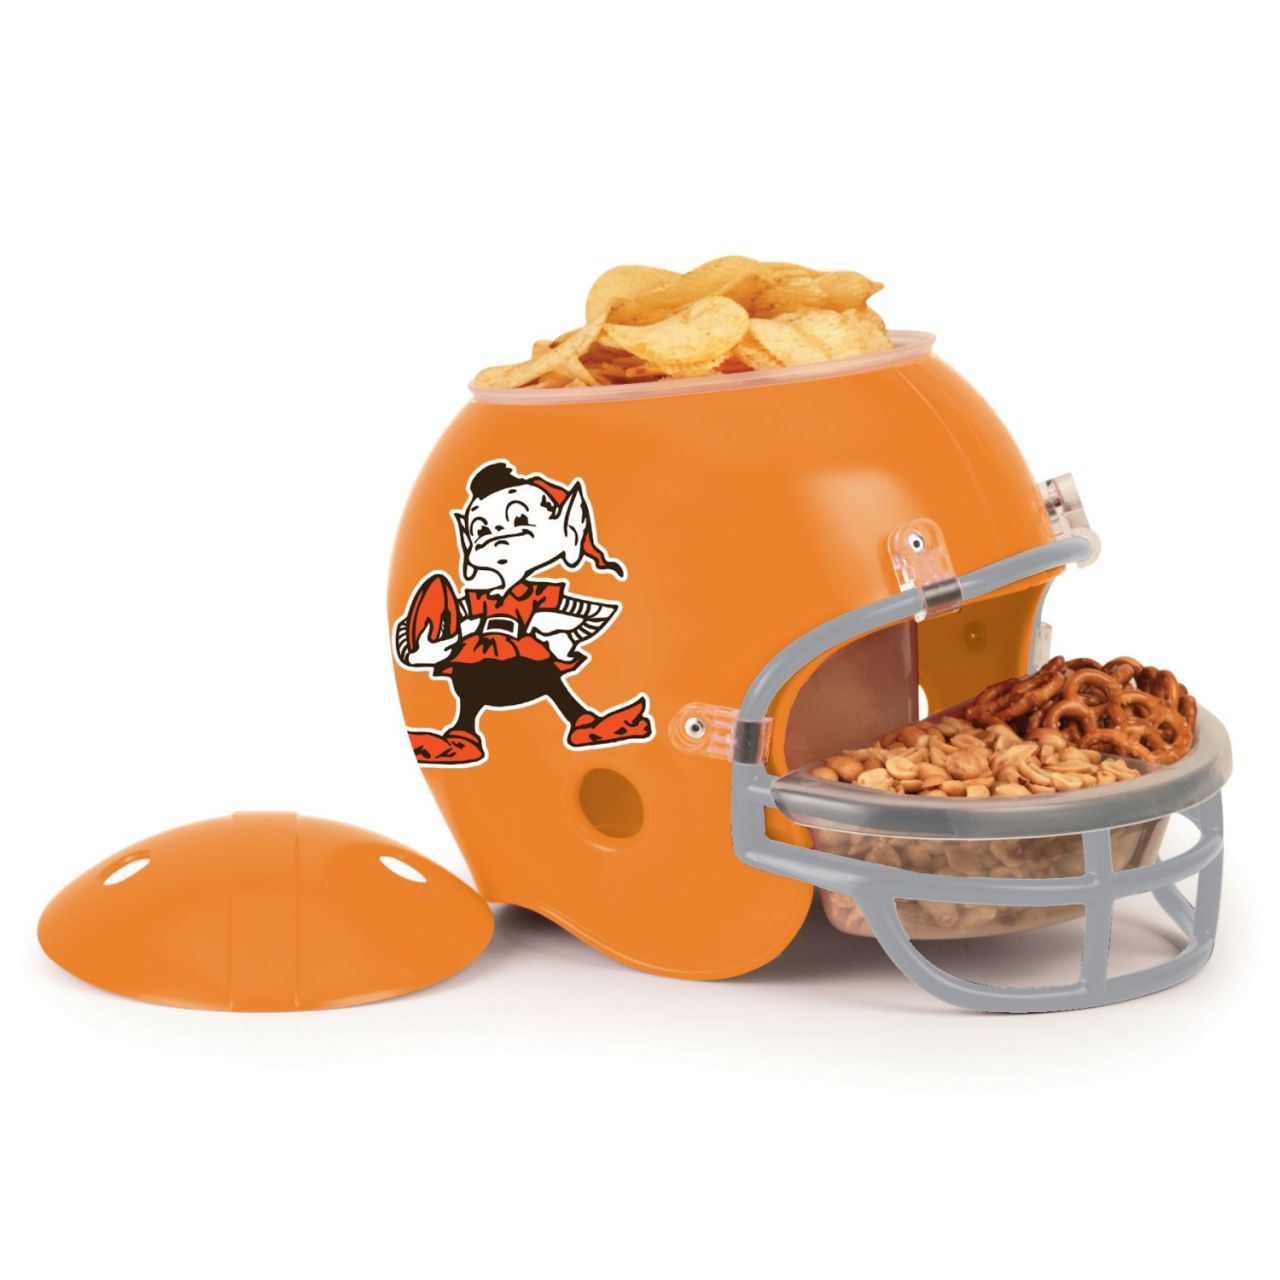 amfoo - Wincraft Snack Helm - NFL Cleveland Browns